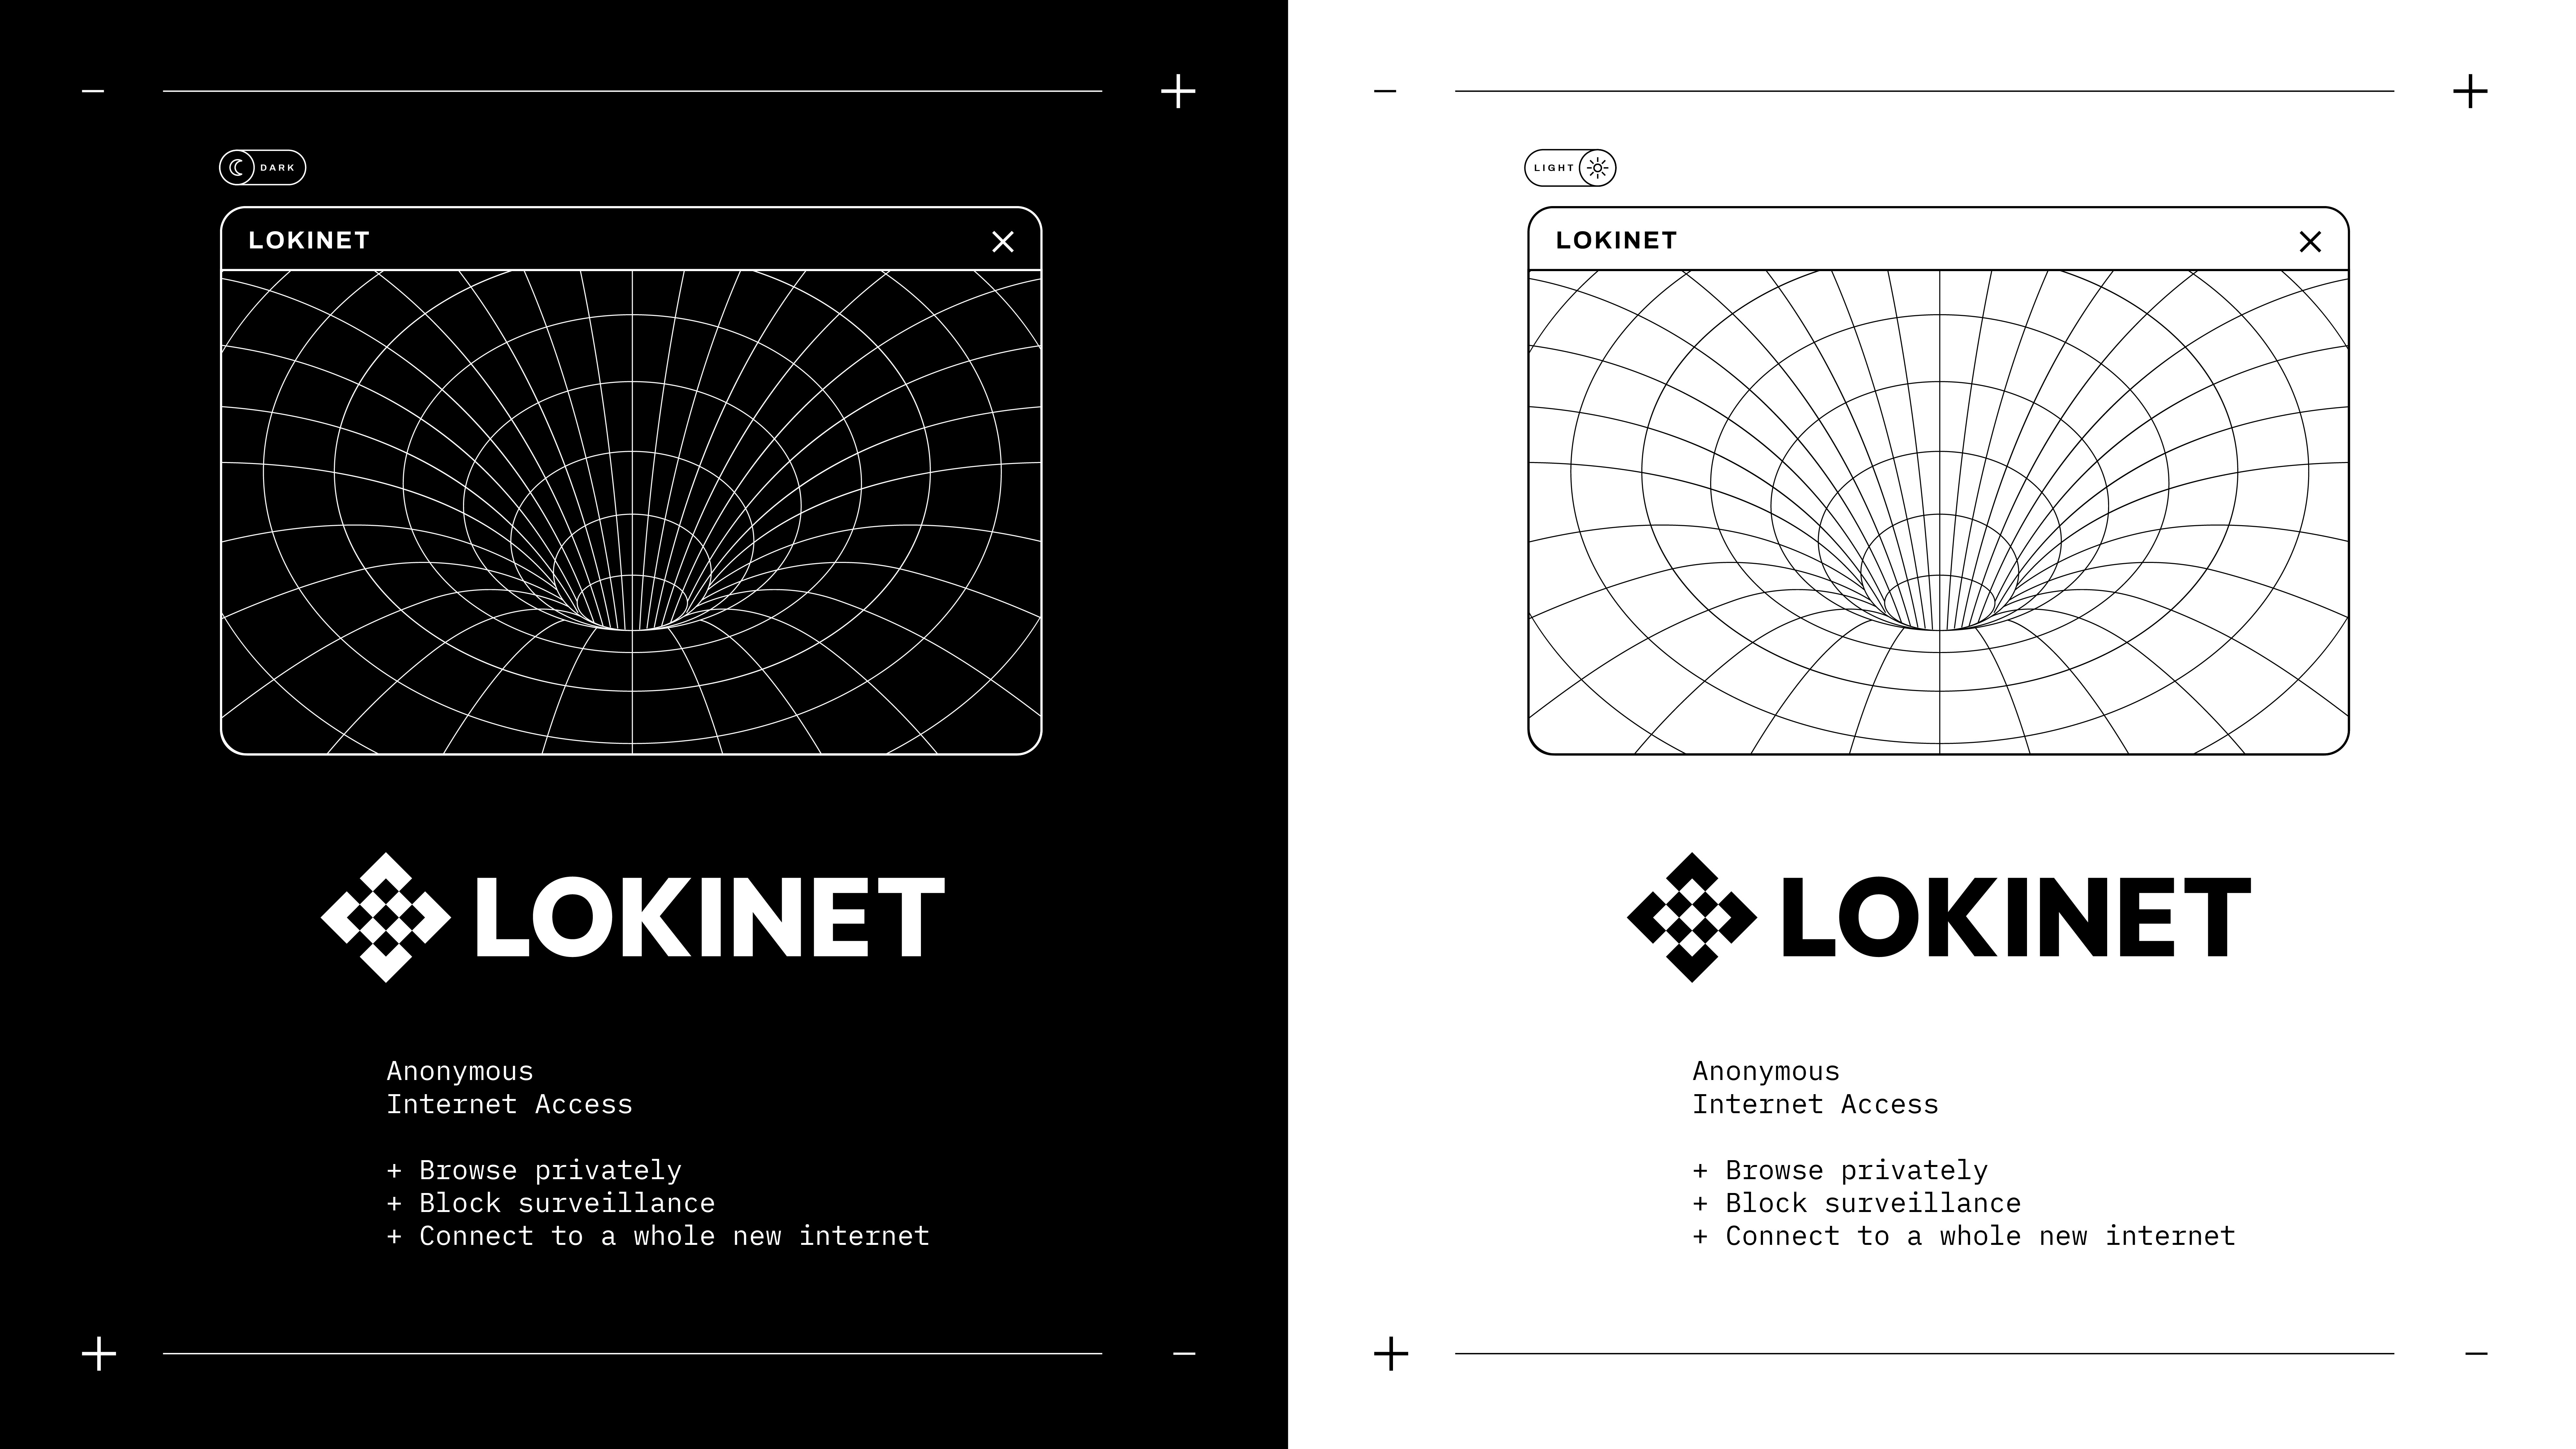 Meet the new Lokinet. Bold in black and white. Pictured are the new light modes and dark modes for the refreshed Lokinet website.